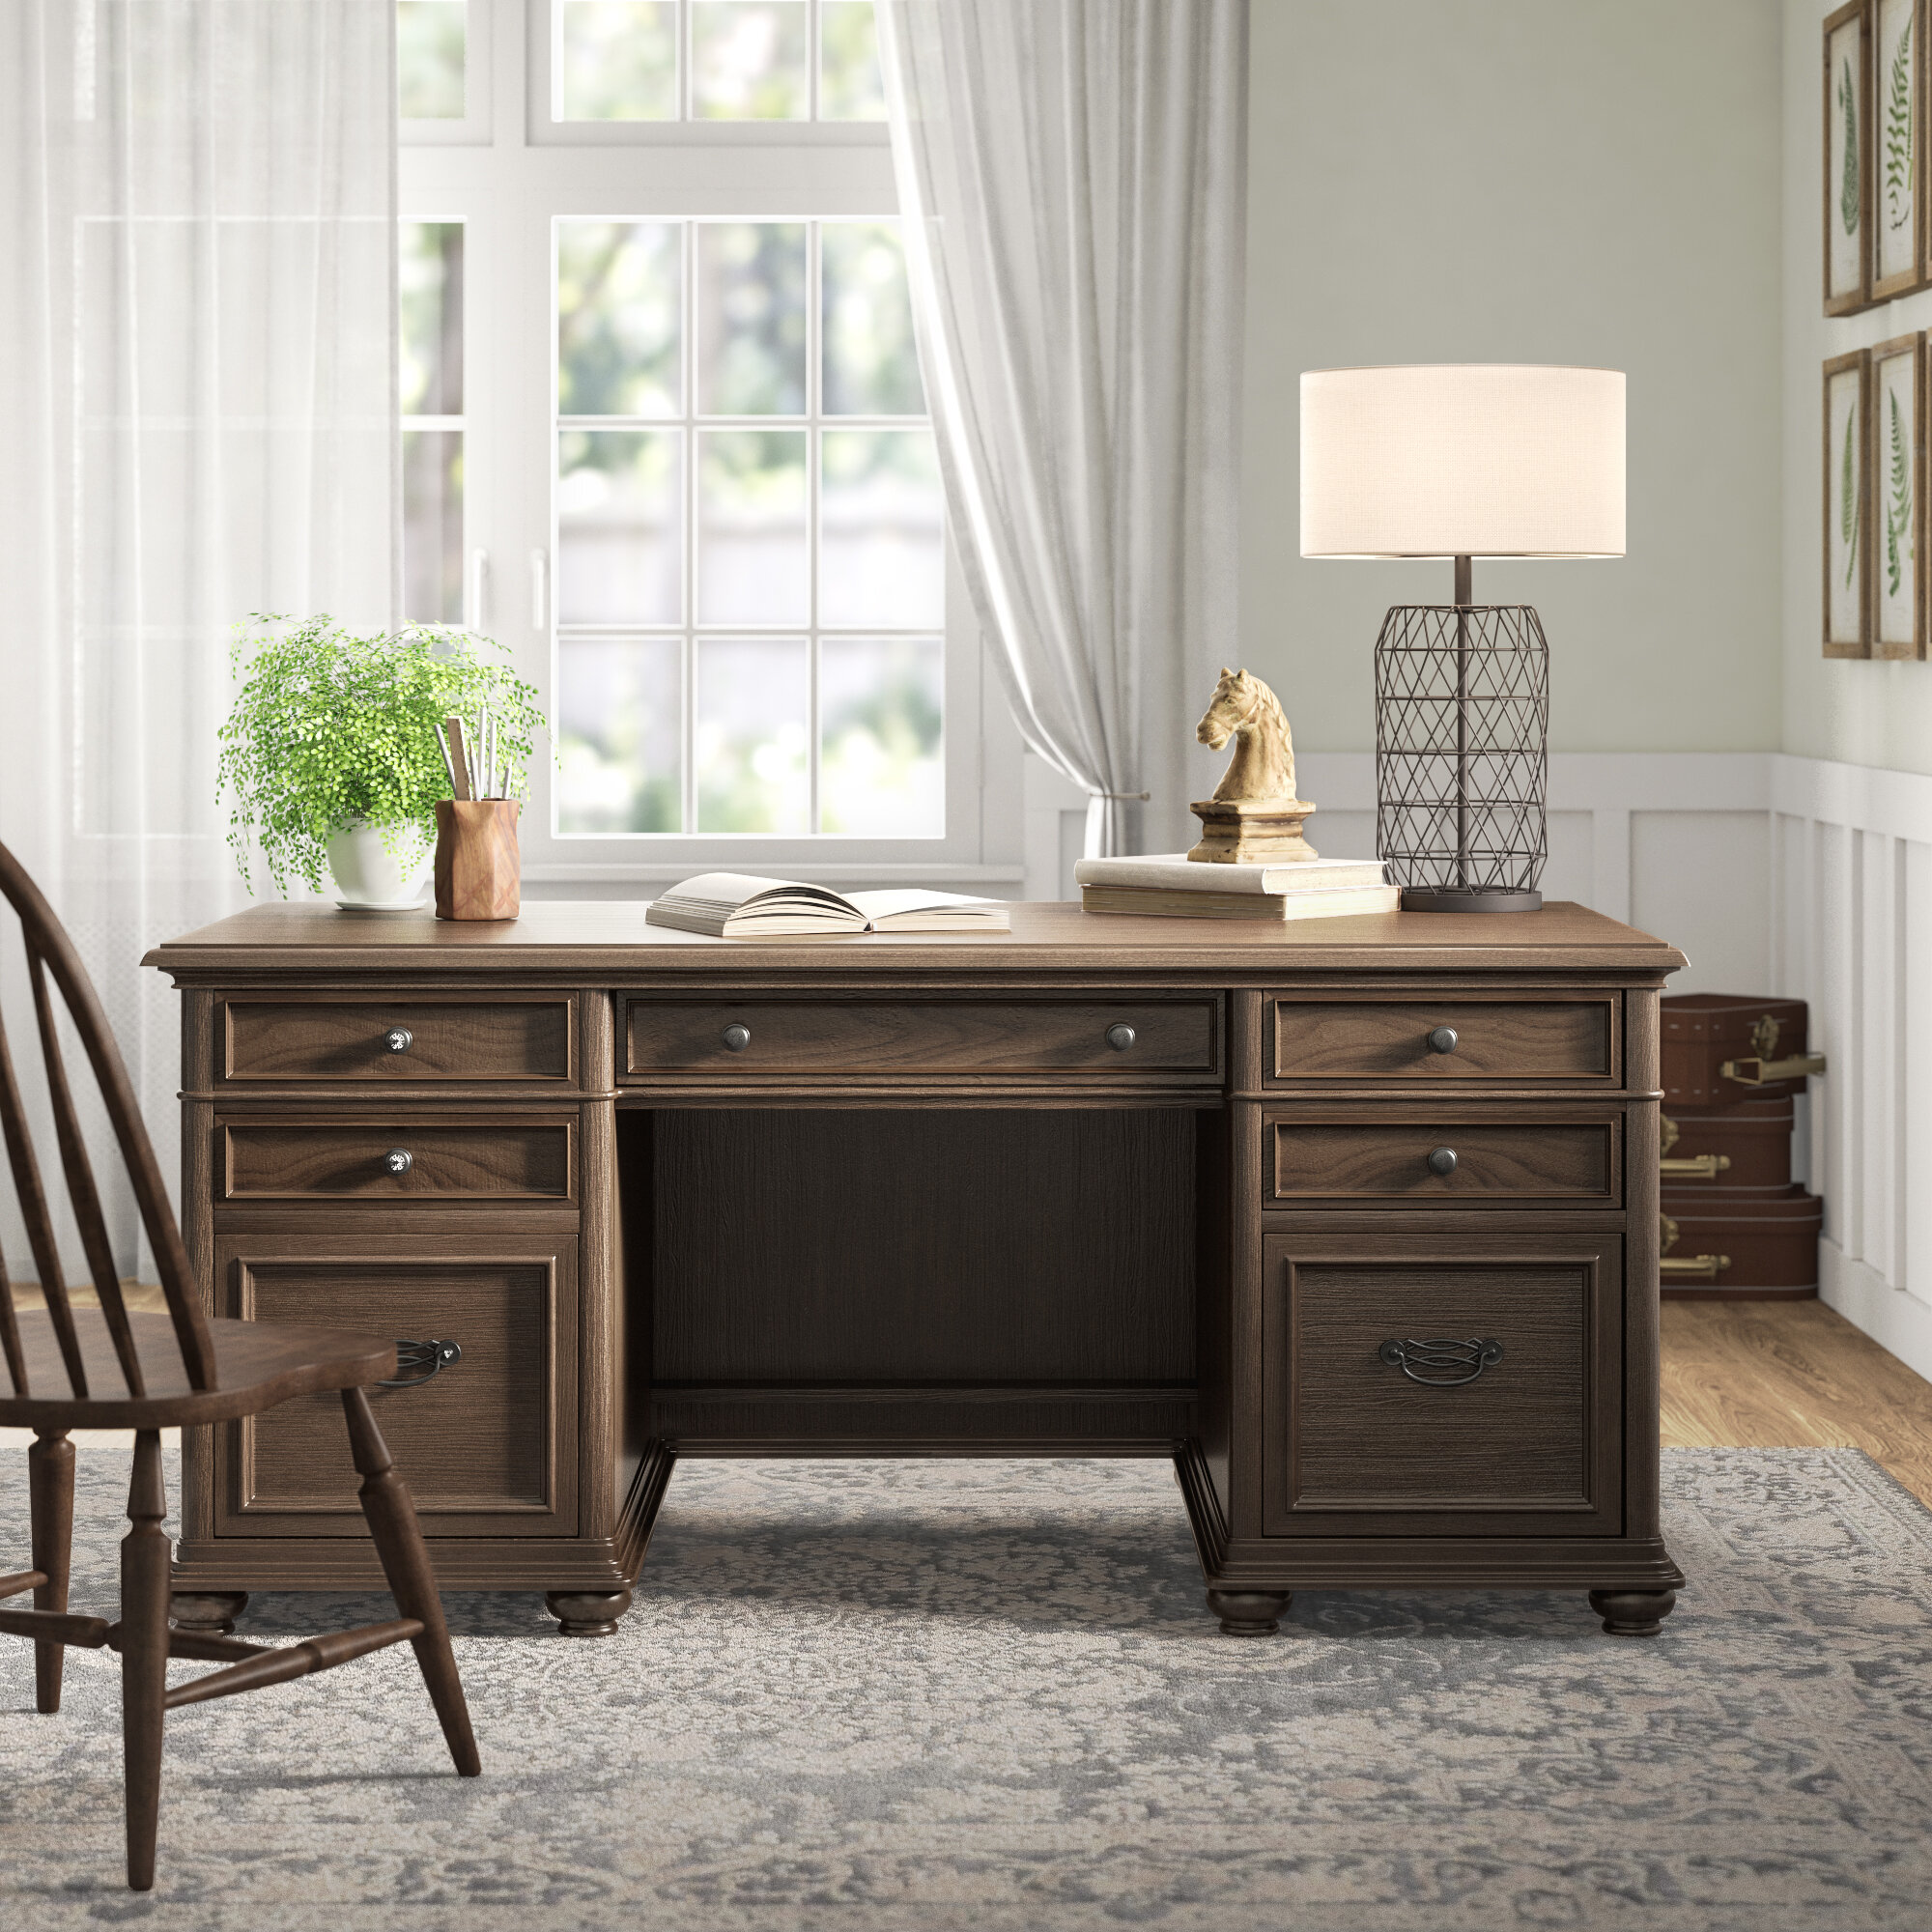 Marvelous Canistota Bonita Westgrove Credenza Desk And Chair Set Dailytribune Chair Design For Home Dailytribuneorg